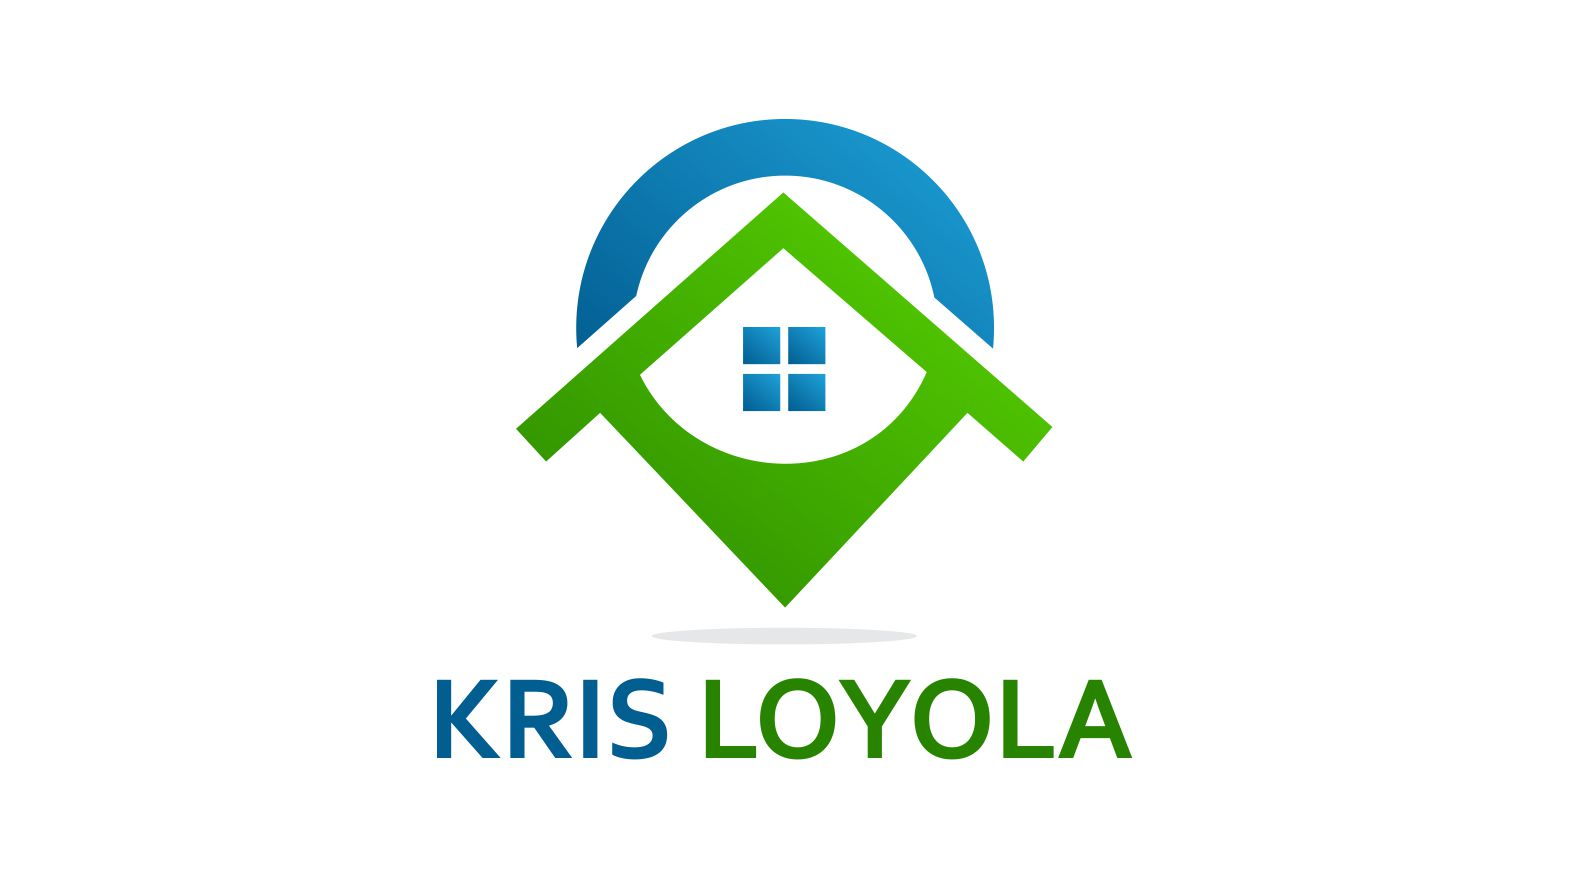 Logo Design by Muhammad Aslam - Entry No. 33 in the Logo Design Contest Kris Loyola Logo Design.